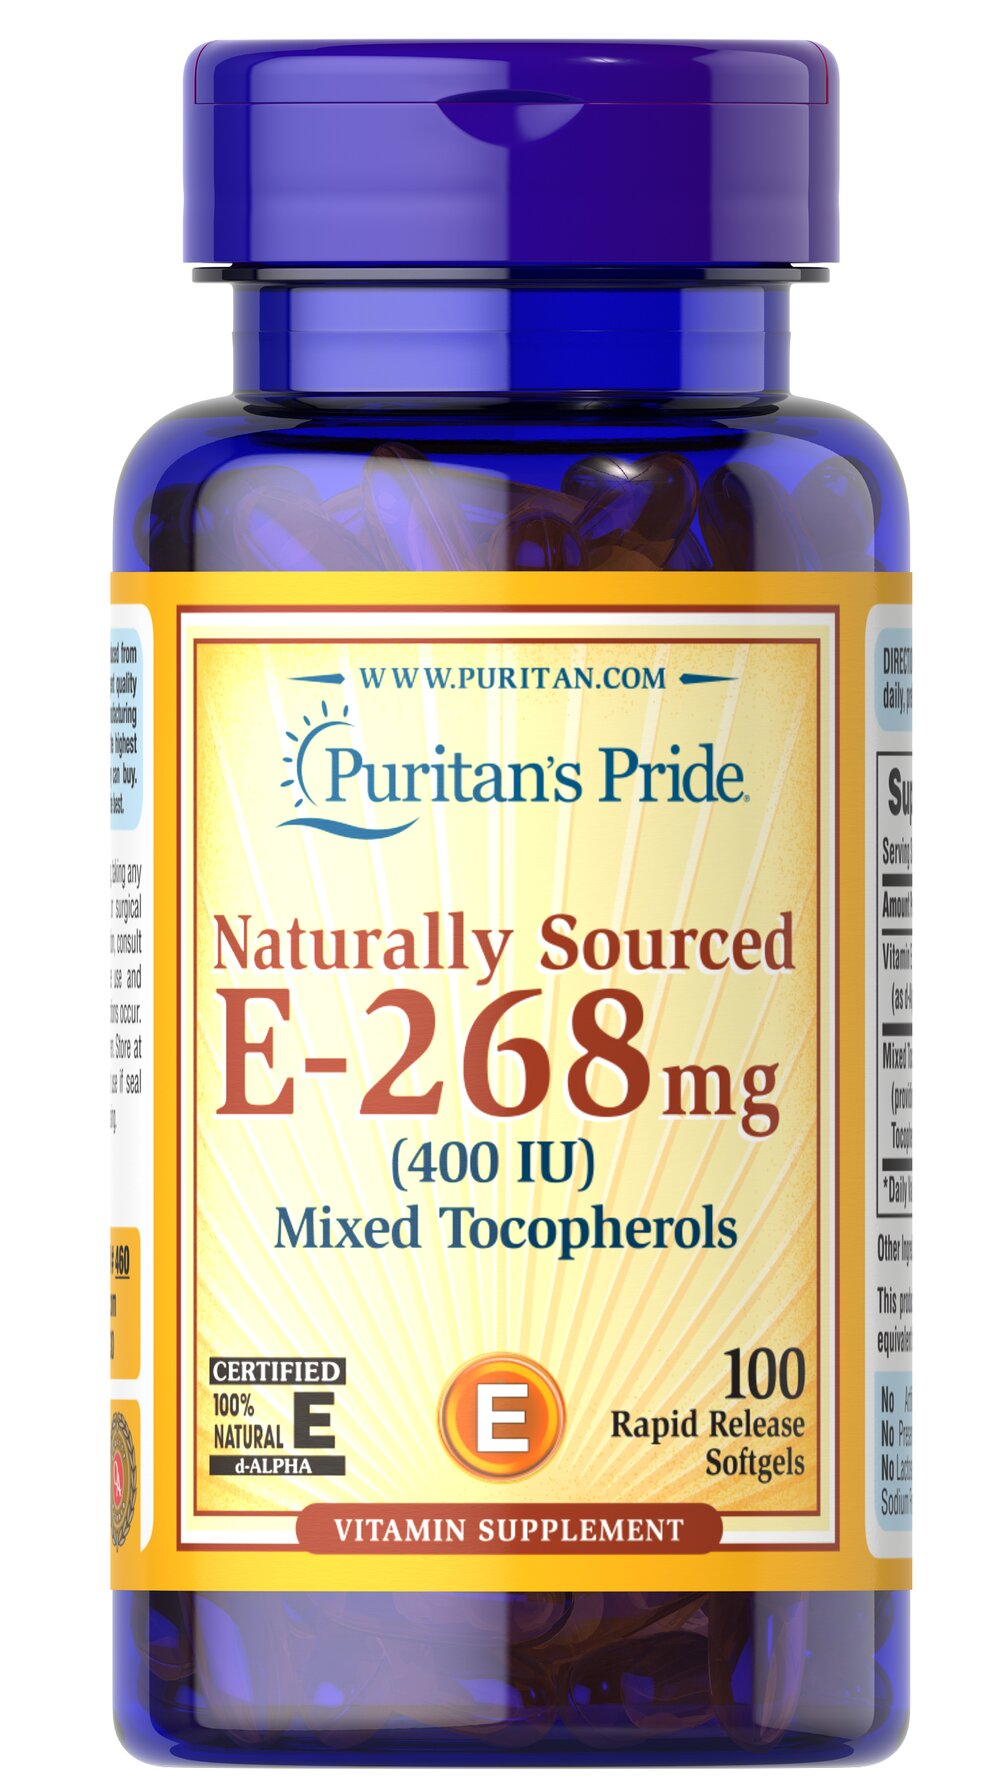 Vitamin E-400 iu Mixed Tocopherols Natural <p><strong>Vitamin E</strong> promotes immune function and helps support cardiovascular health.** Vitamin E is also a powerful <strong>antioxidant</strong> that helps fight cell-damaging free radicals in the body.** Studies have shown that oxidative stress caused by free radicals may contribute to the premature aging of cells.**</p> 100 Softgels 400 IU $16.48